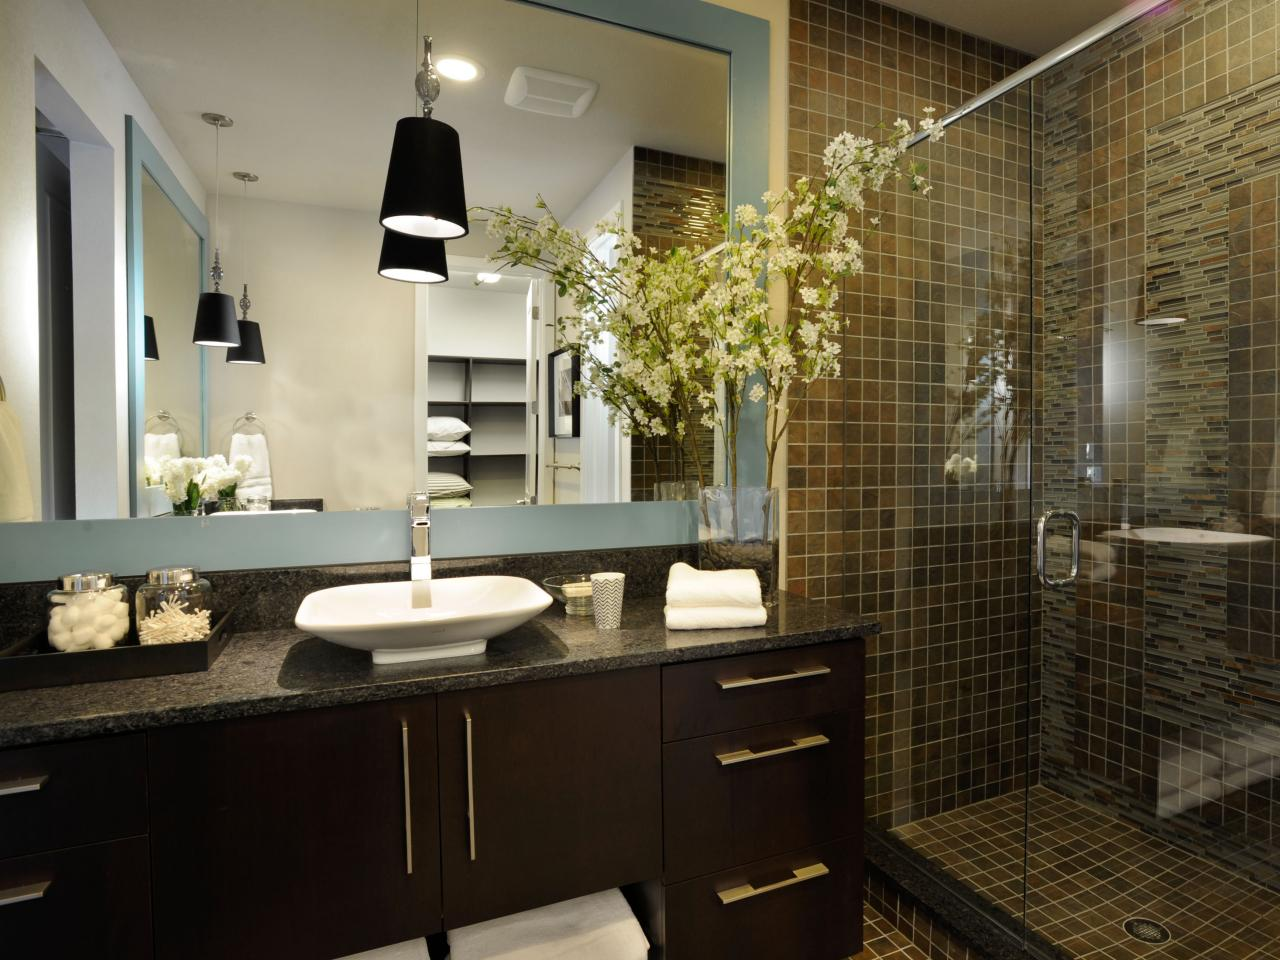 Modern Bathroom Images midcentury modern bathrooms: pictures & ideas from hgtv | hgtv